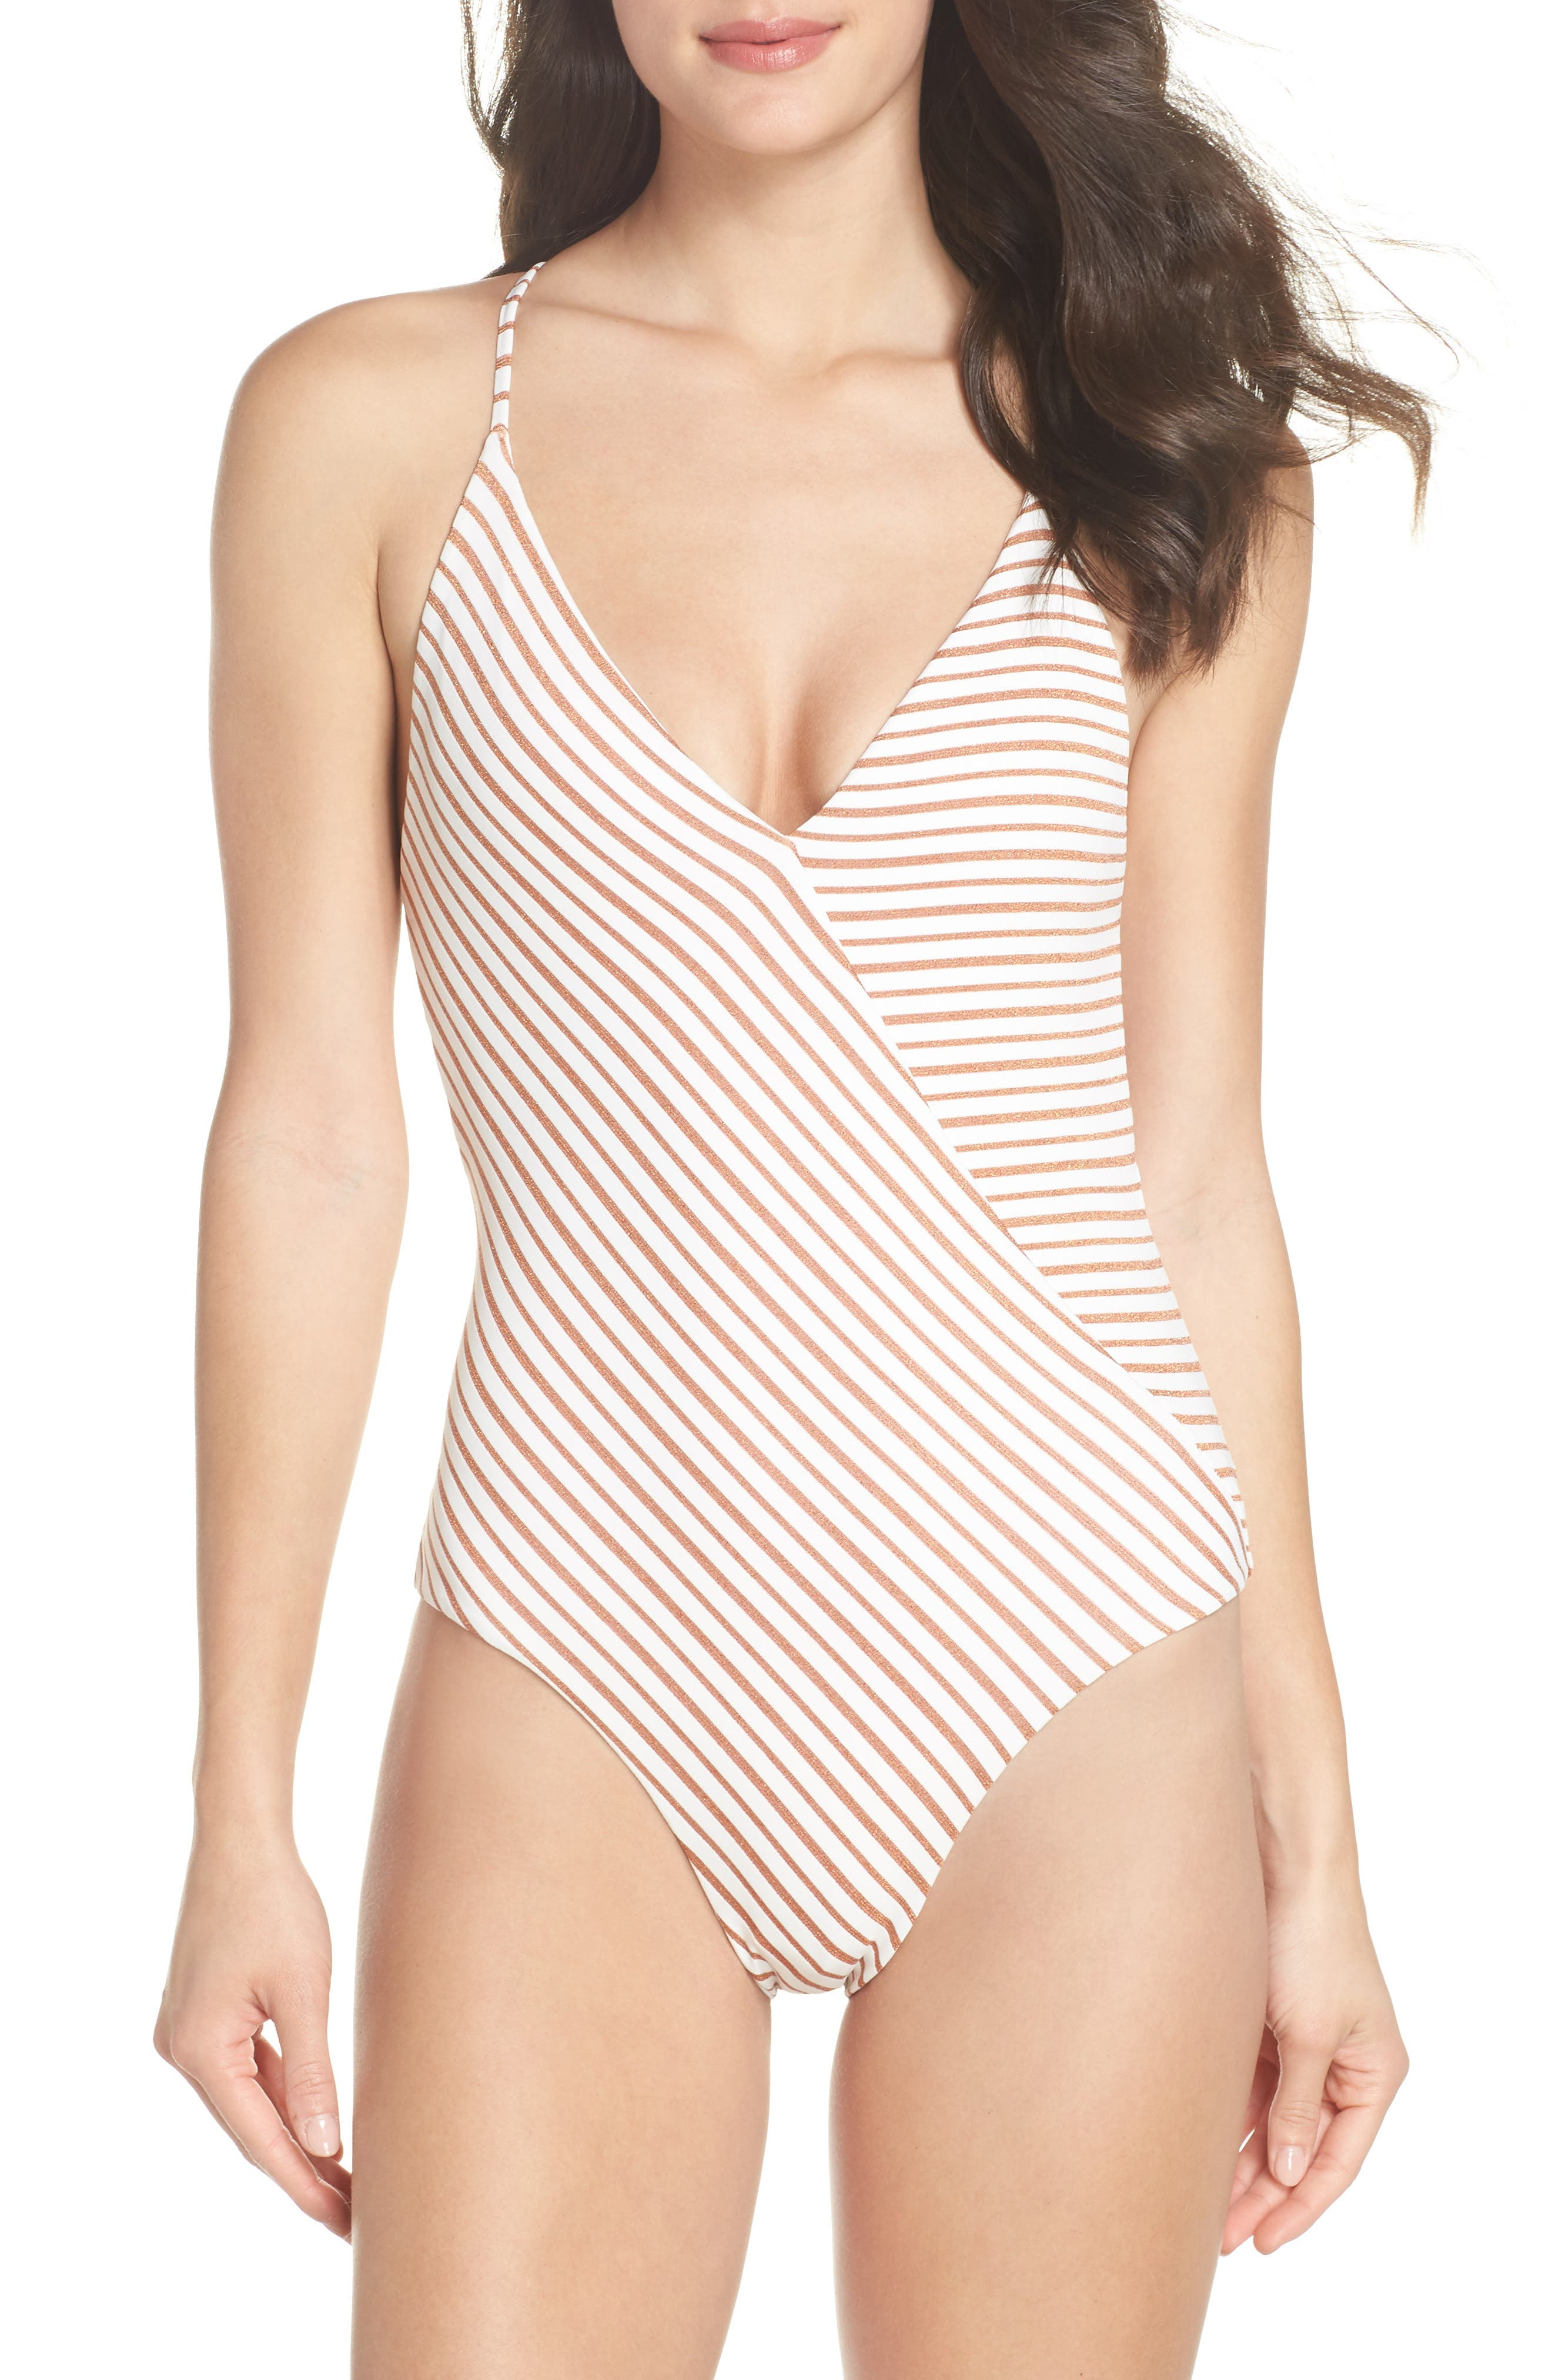 Blair One-Piece Swimsuit,                         Main,                         color, White